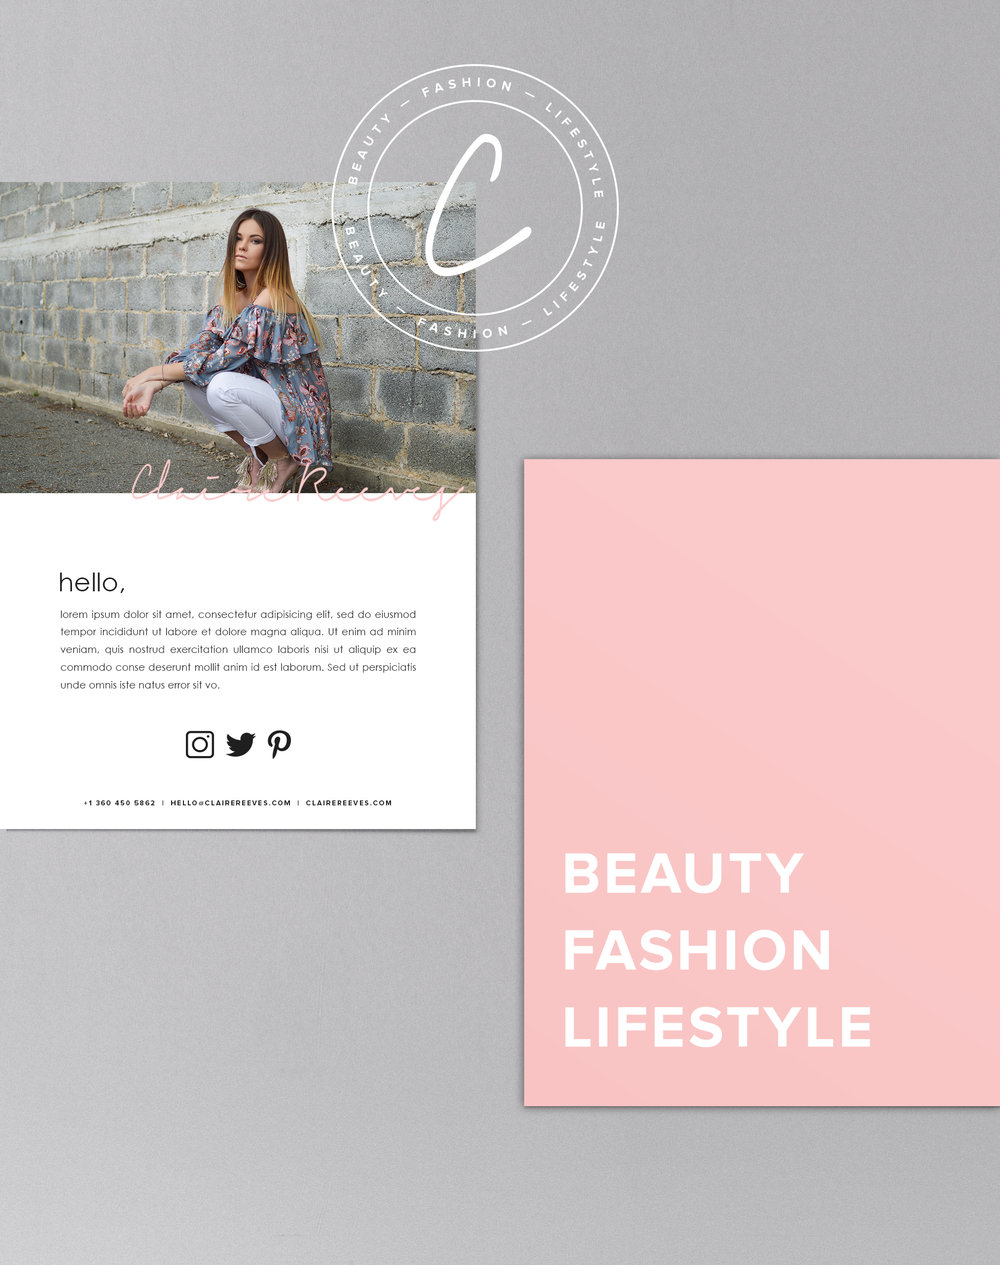 Claire-Reeves-Blogger-Branding-Collateral-Media-Kit.jpg